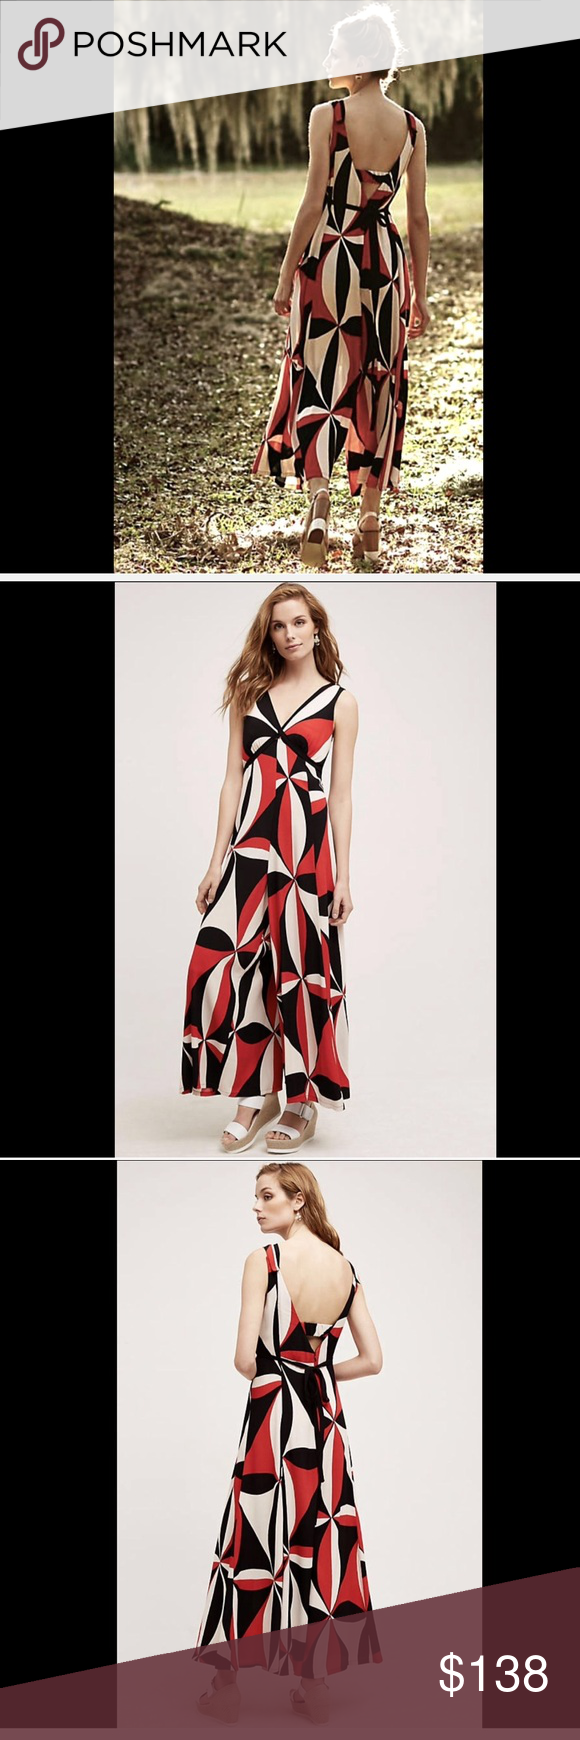 af372d093c24 Anthropologie HD in Paris Wide Leg Jumpsuit 4 Anthropologie HD in Paris Tallulah  Wide Leg Jumpsuit In a Modern Mod print in red, white & black babydoll ...